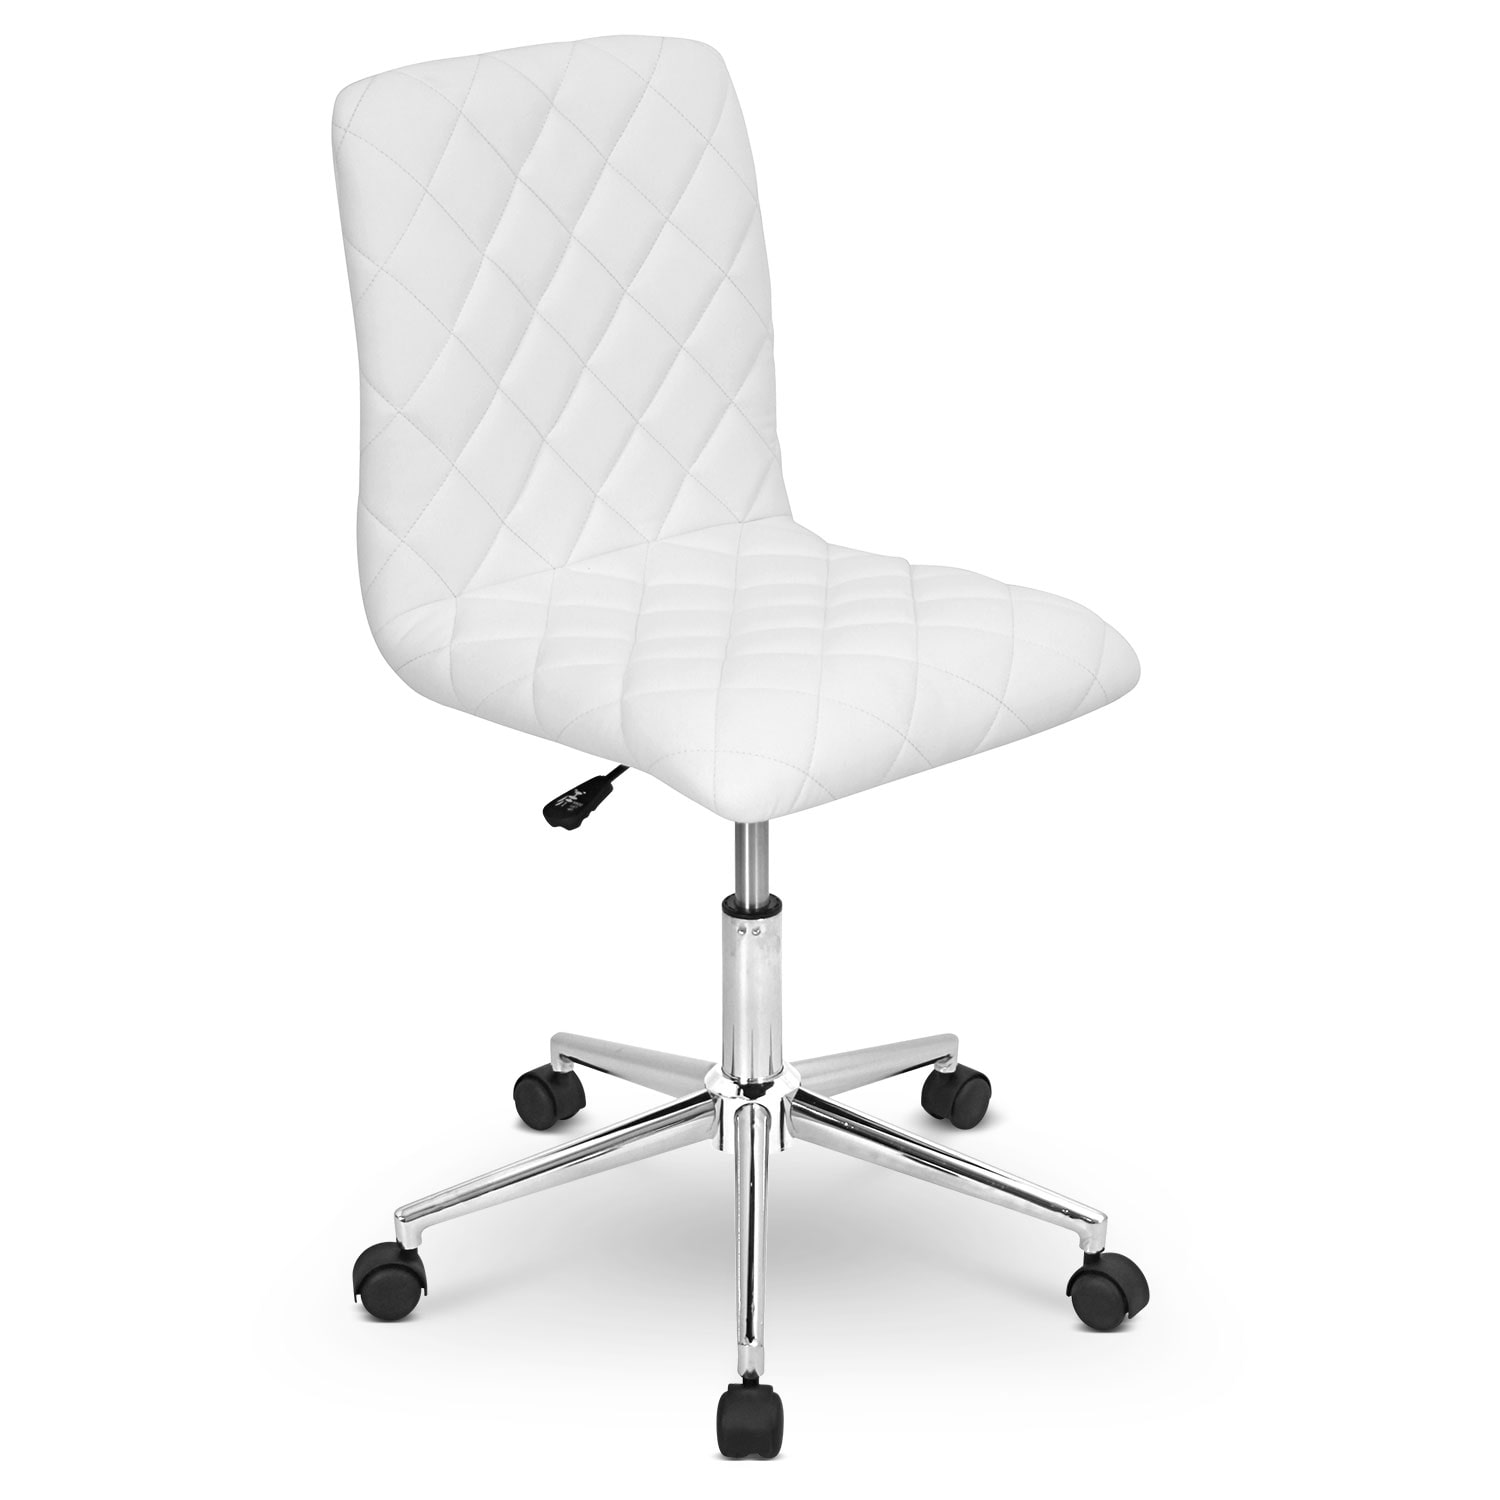 [Trent Office Chair - White]